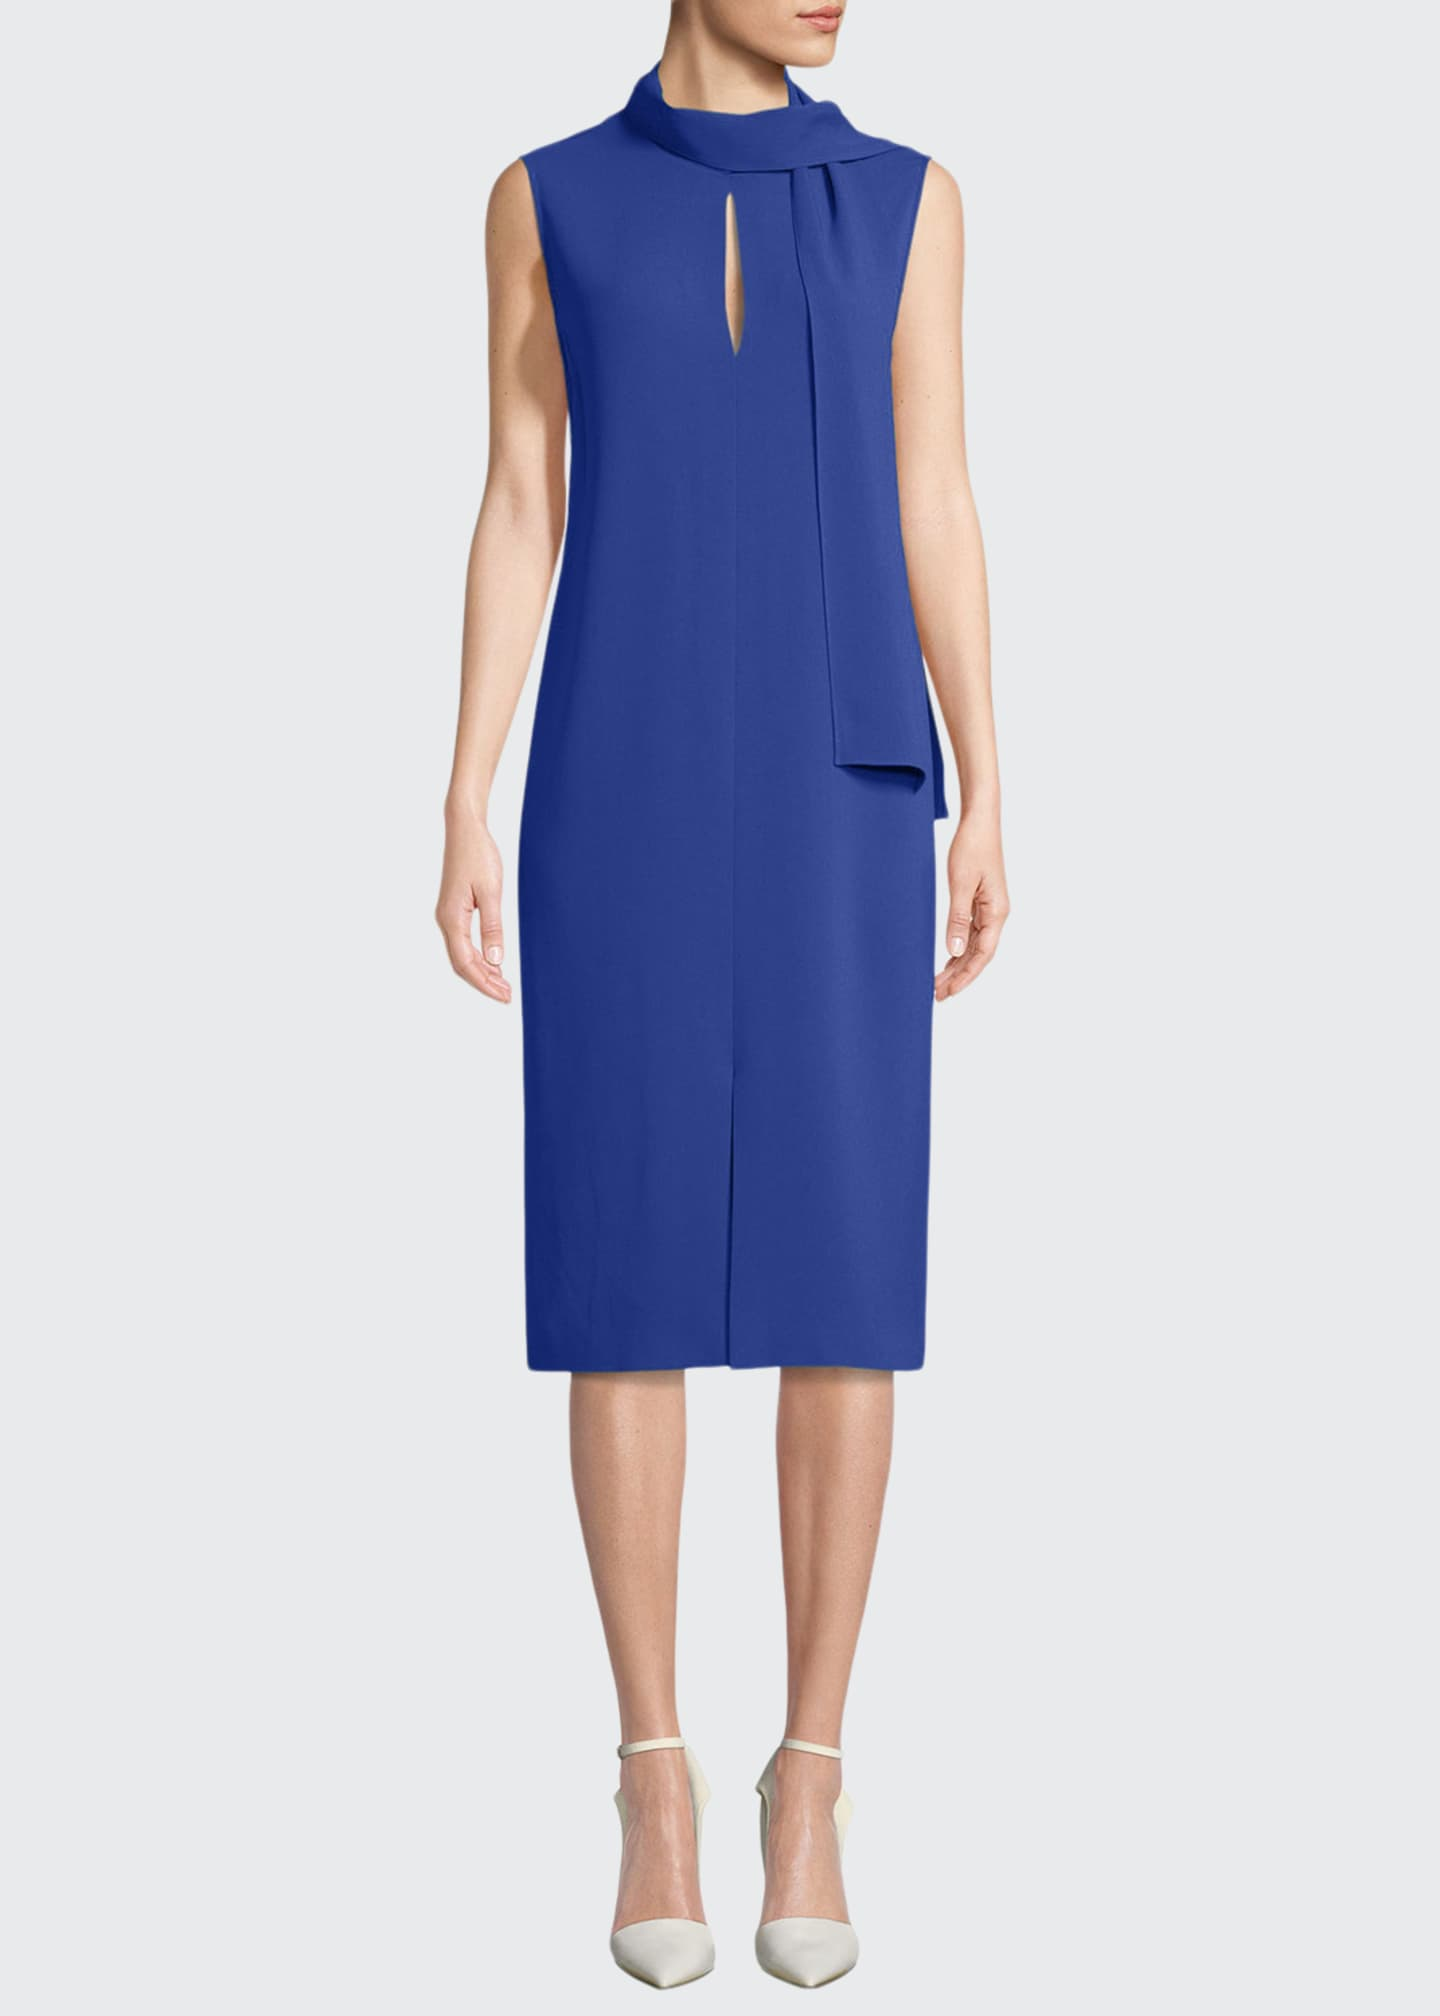 Joseph Noon Sleeveless Necktie Shift Dress